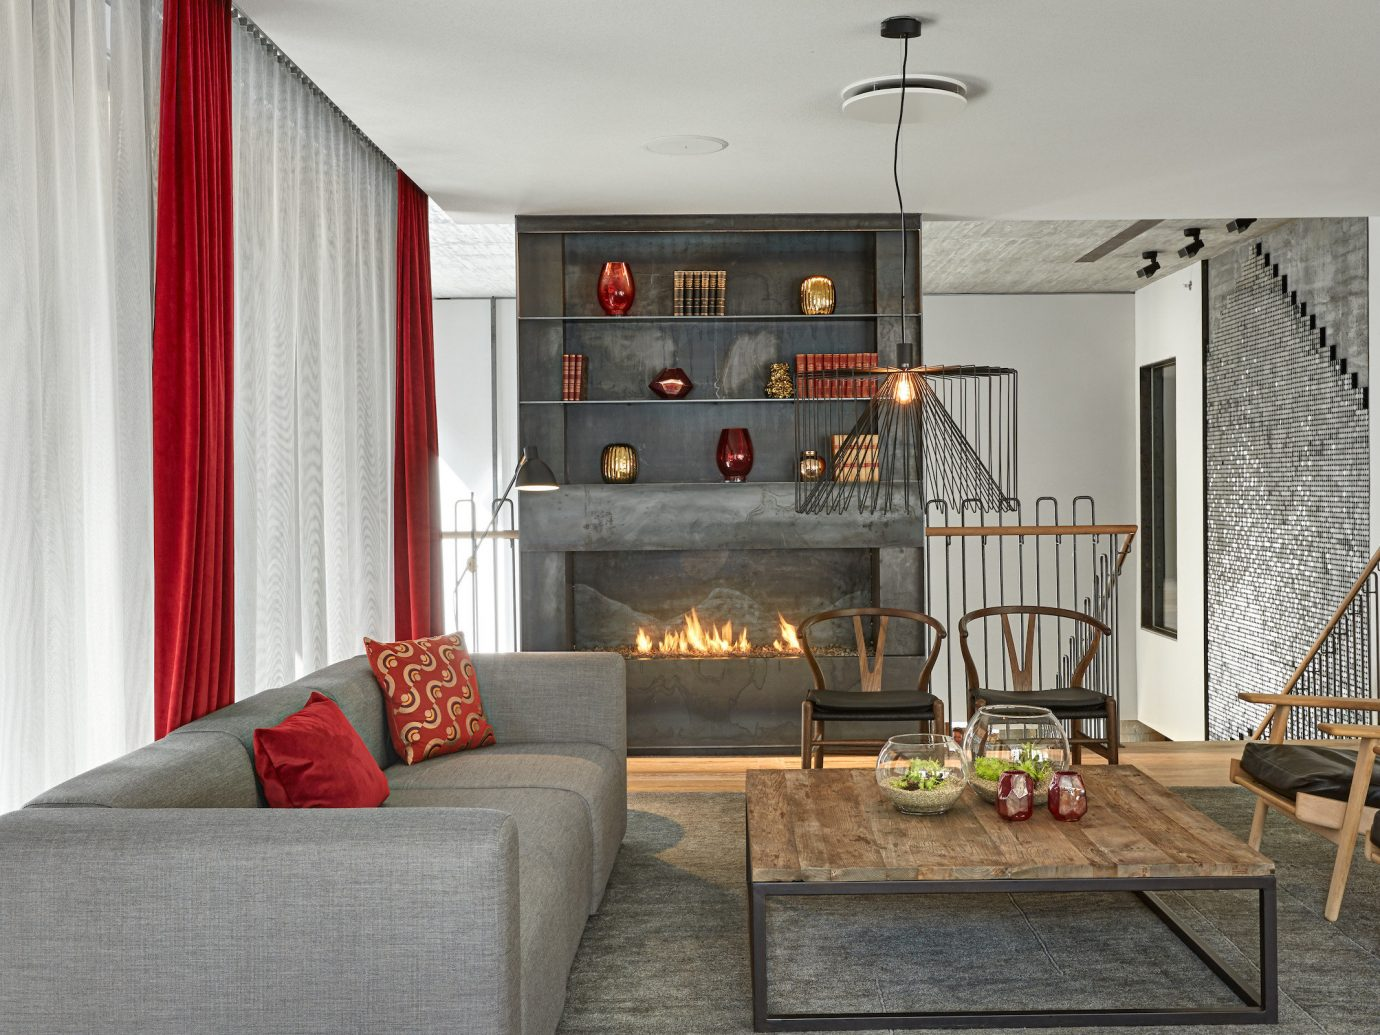 Boutique Hotels indoor Living room wall sofa floor chair living room property home interior design red cottage furniture Design real estate loft estate farmhouse apartment decorated